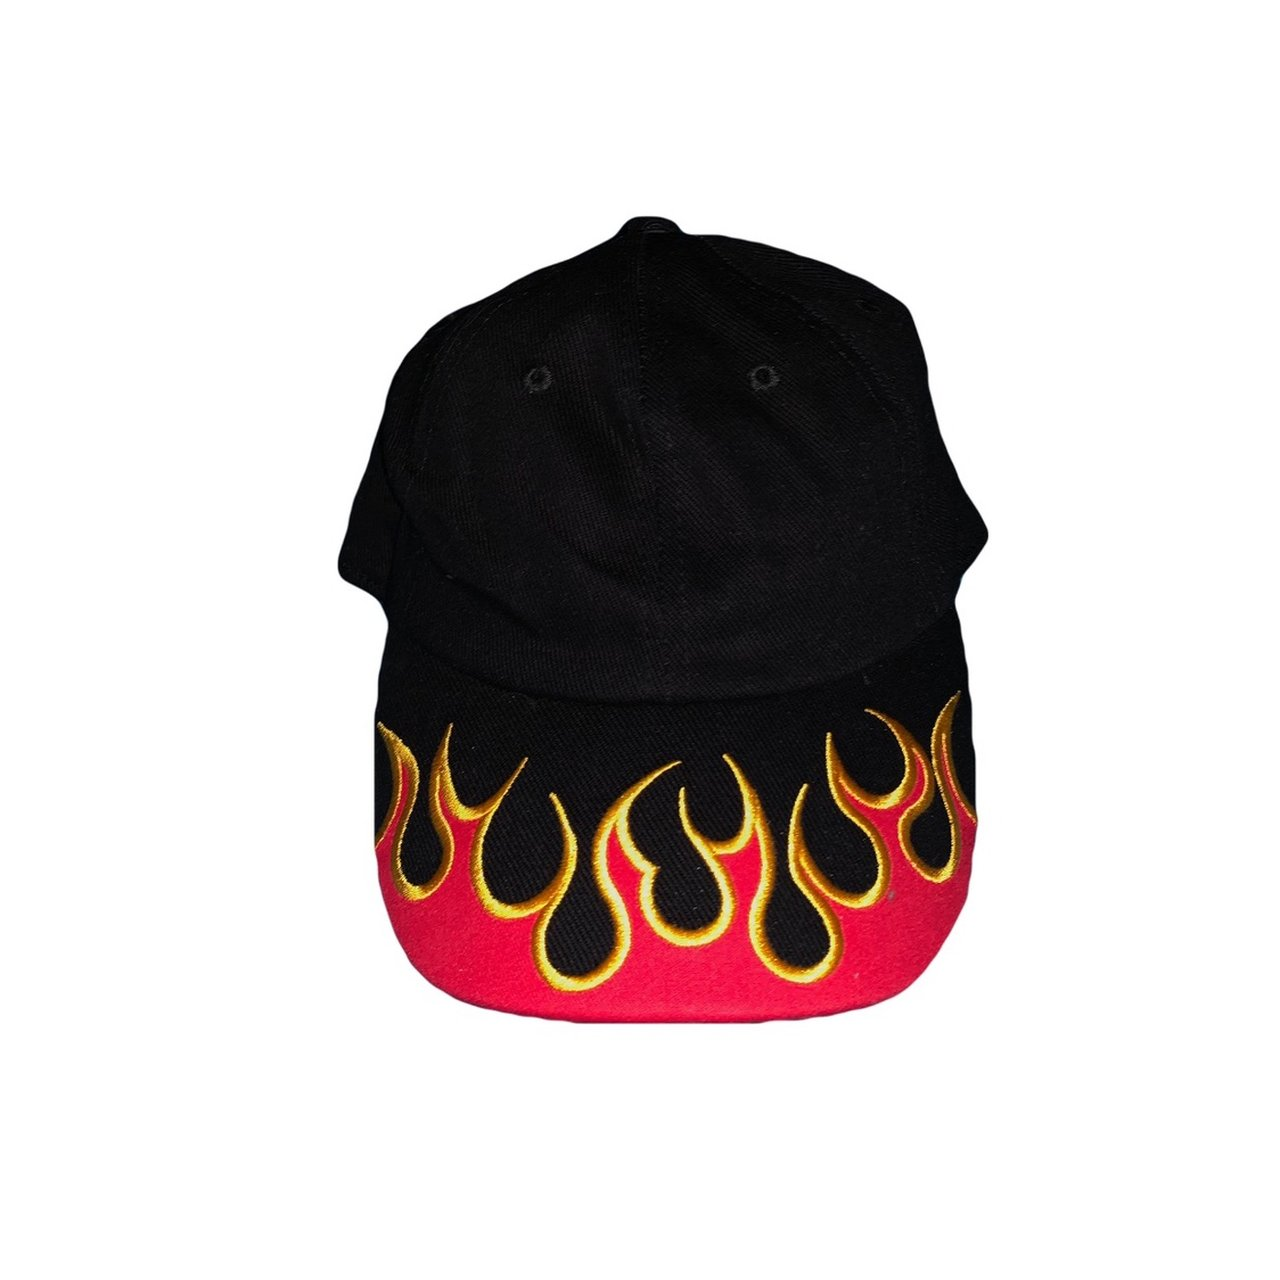 953cd3acc22 Urban Outfitters flame hat in perfect condition! FREE US - Depop